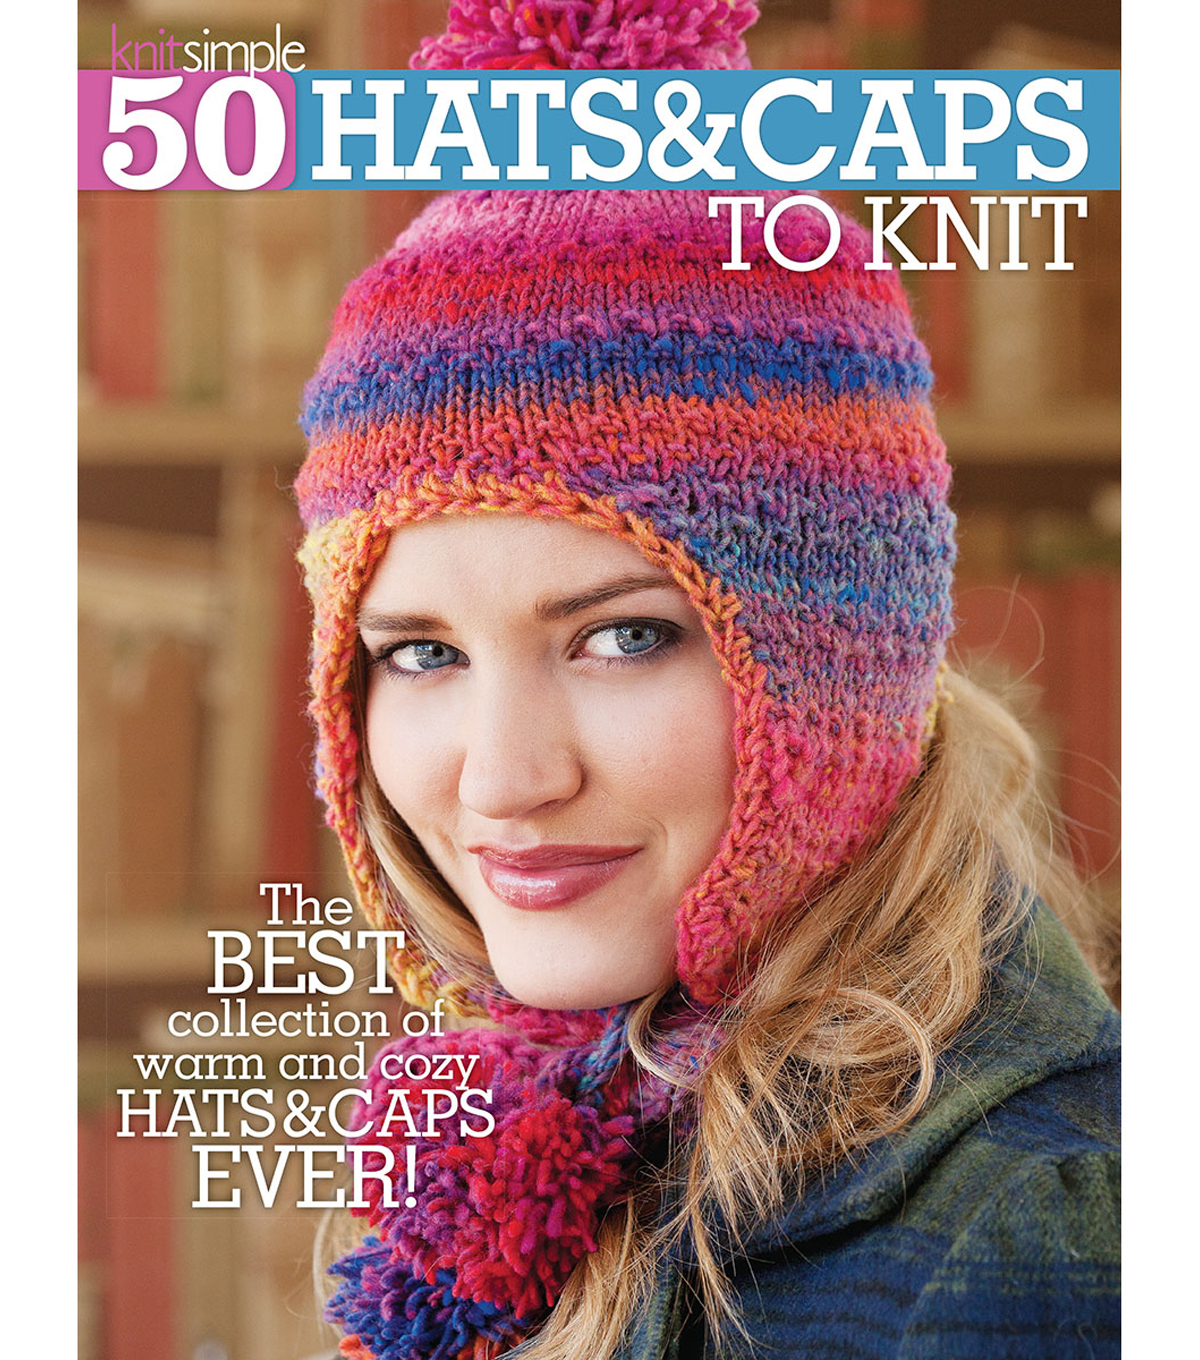 50 Hats & Caps To Knit Book